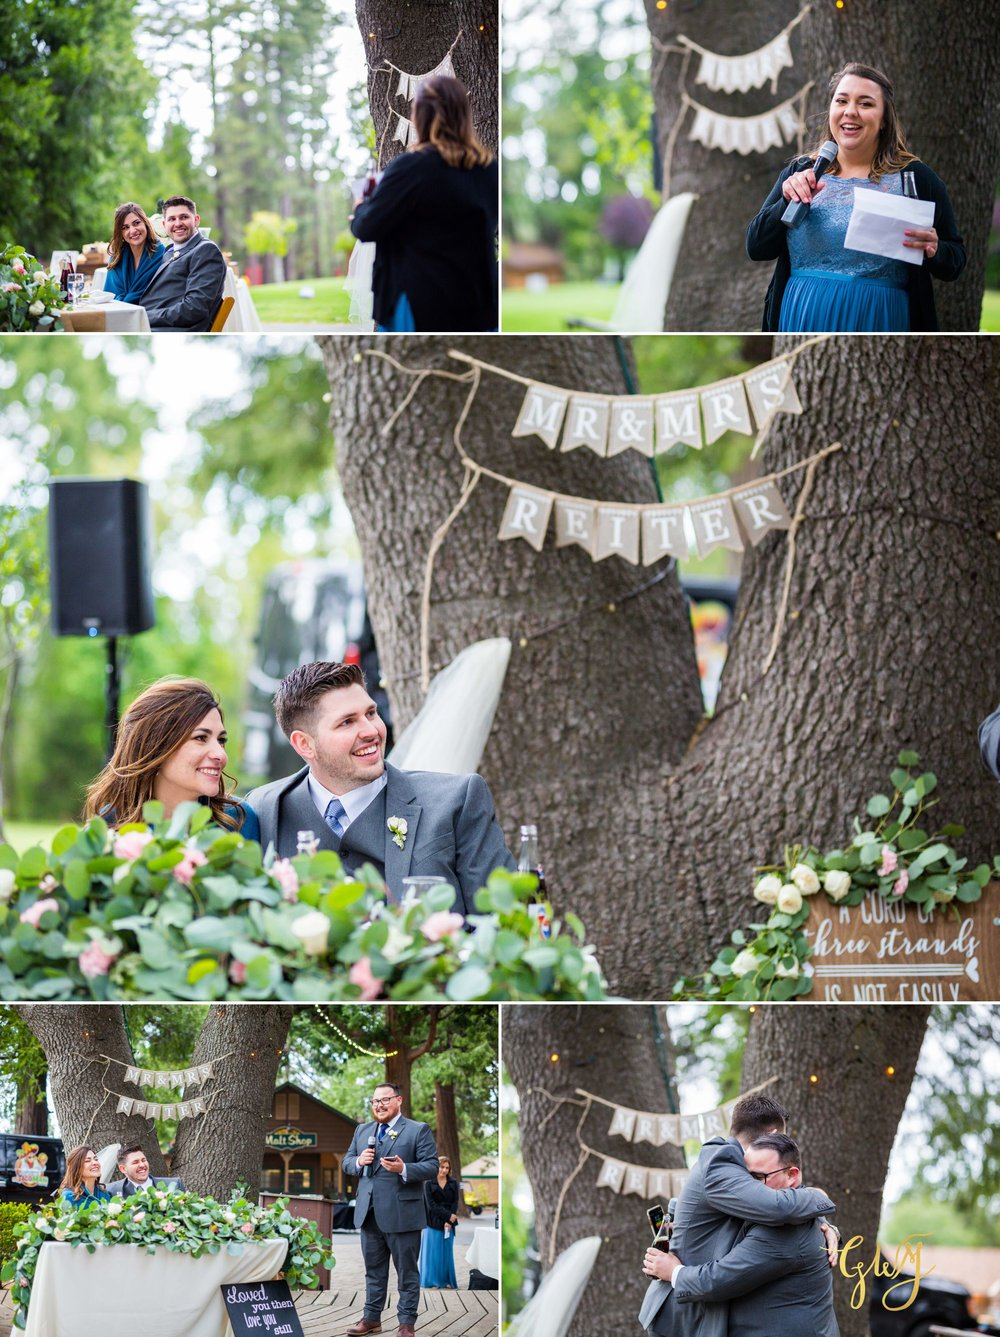 Allison + Jared Southern California Mountain Thousand Pines Christian Camp Wedding by Glass Woods Media 38.jpg